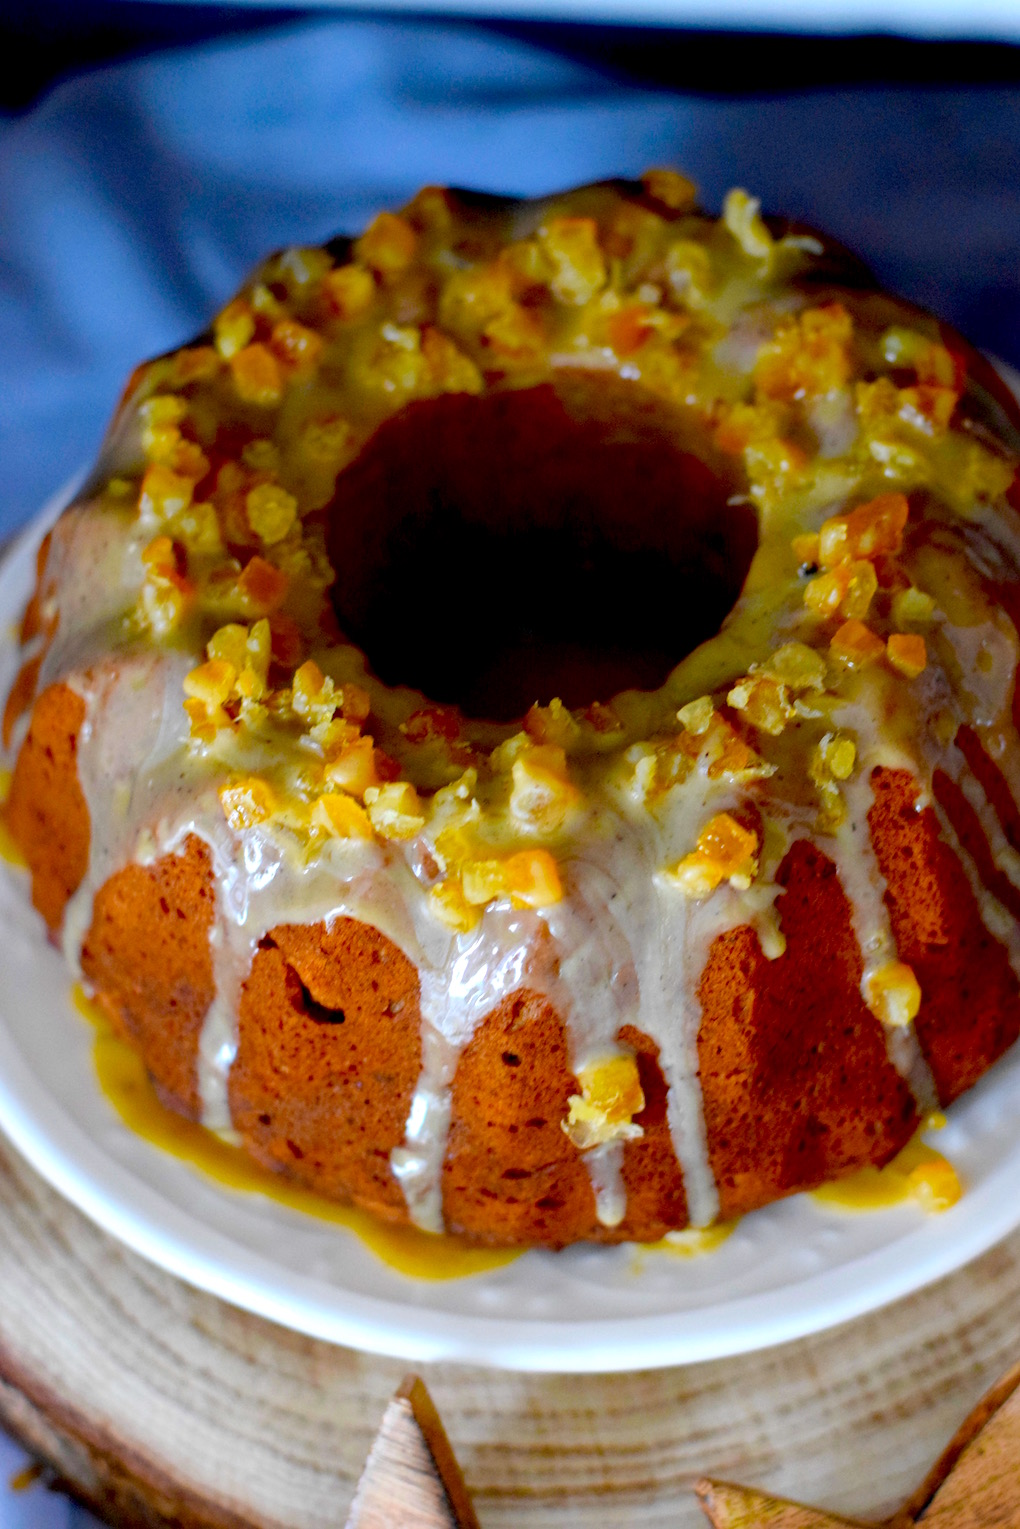 Orange Christmas Cake Recipe